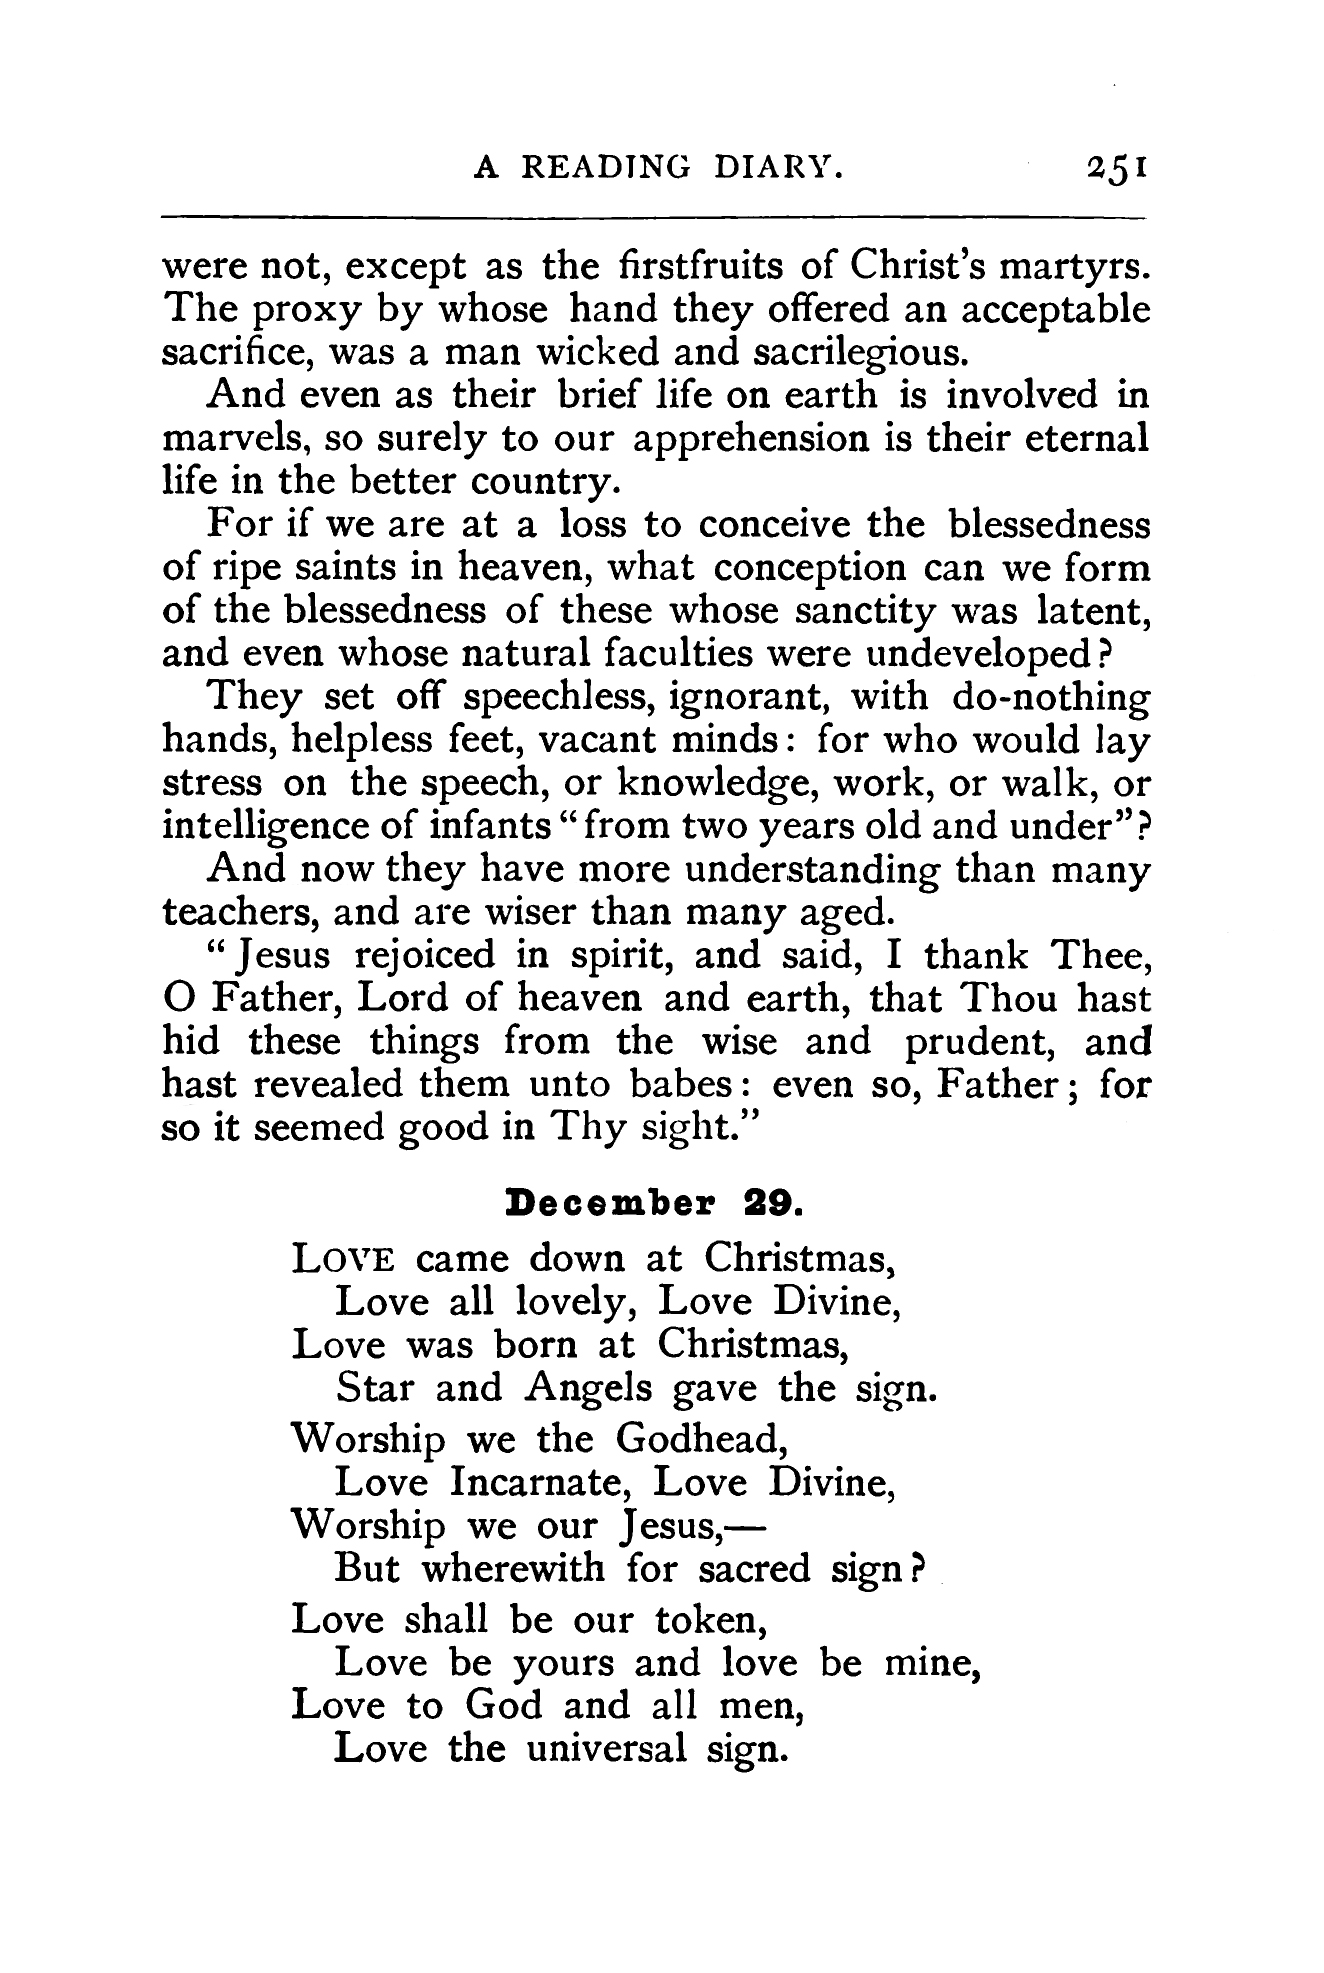 Fig. 1.  Christina Rossetti,  Time Flies: A Reading Diary  (London: SPCK, 1885).